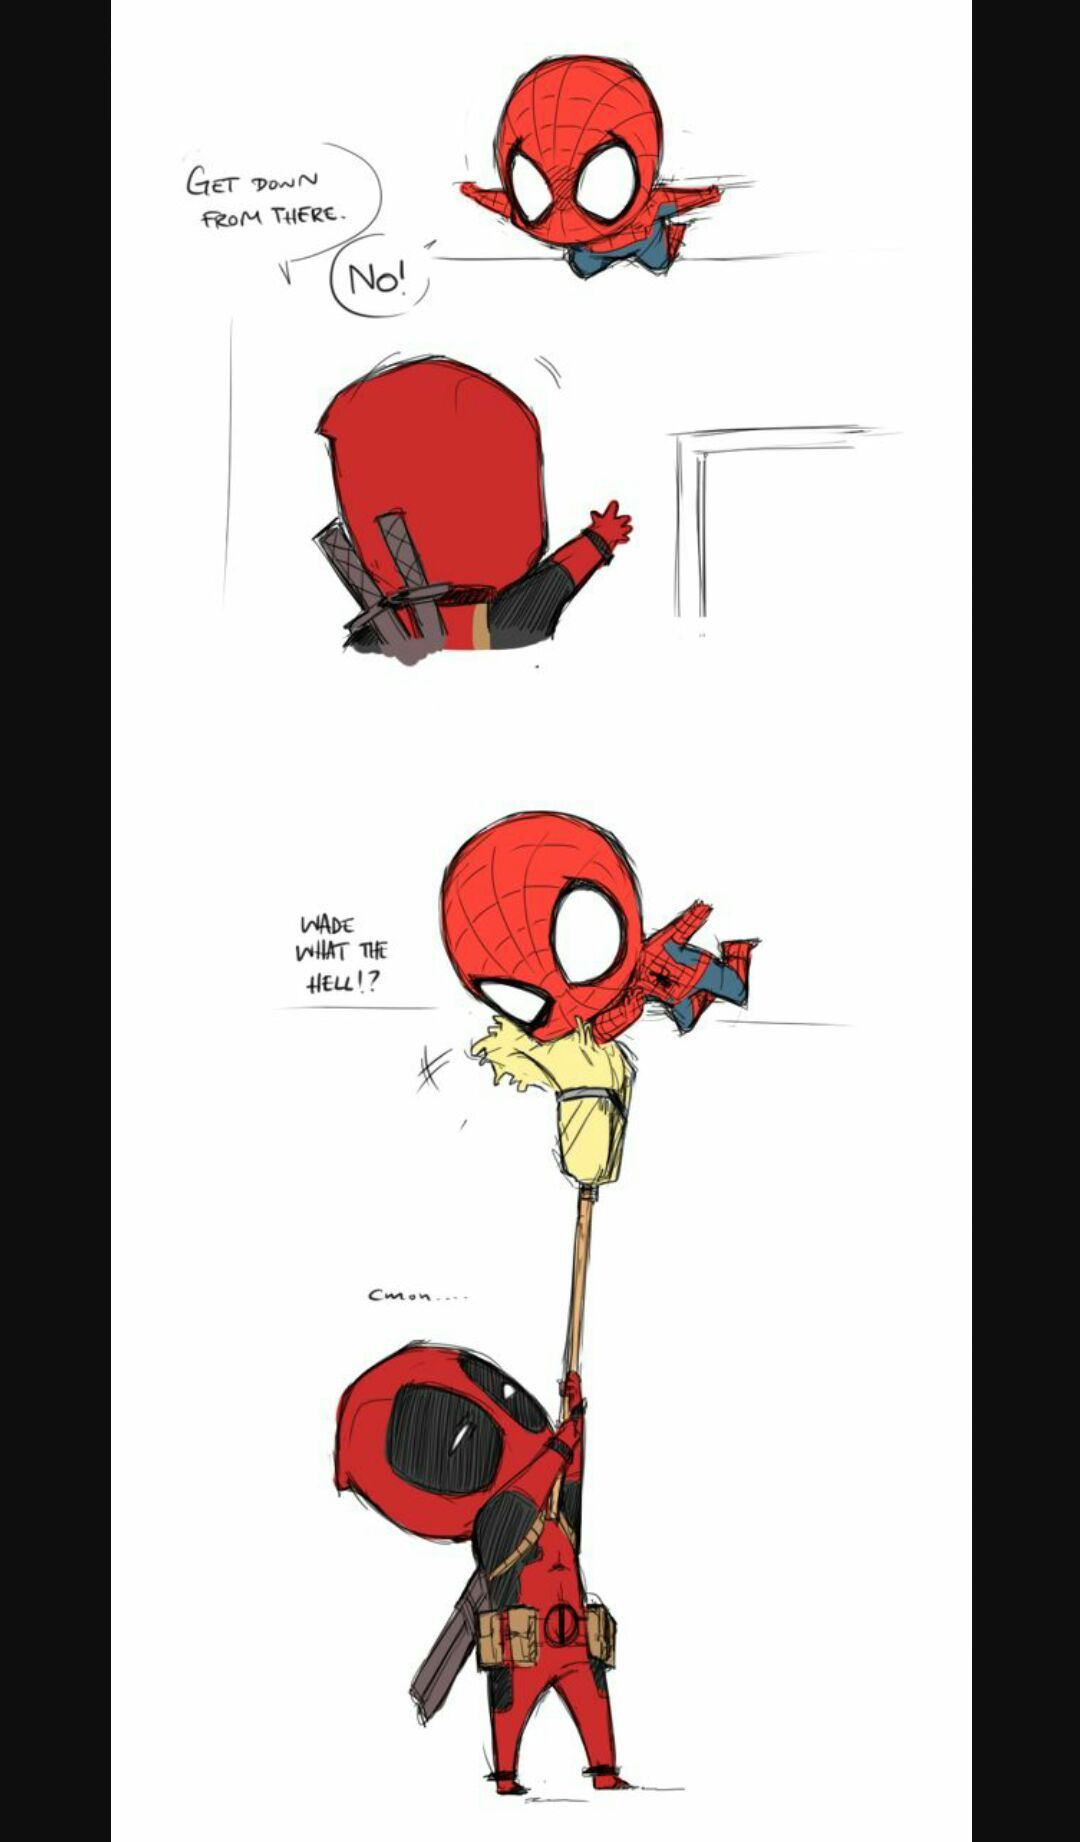 Wattpad Fanfiction This Is Spiderman X Deadpool Its Oneshots That Can Be Requested Ill Have A Few Of My Own Ideas But I Will Totally Take Requests